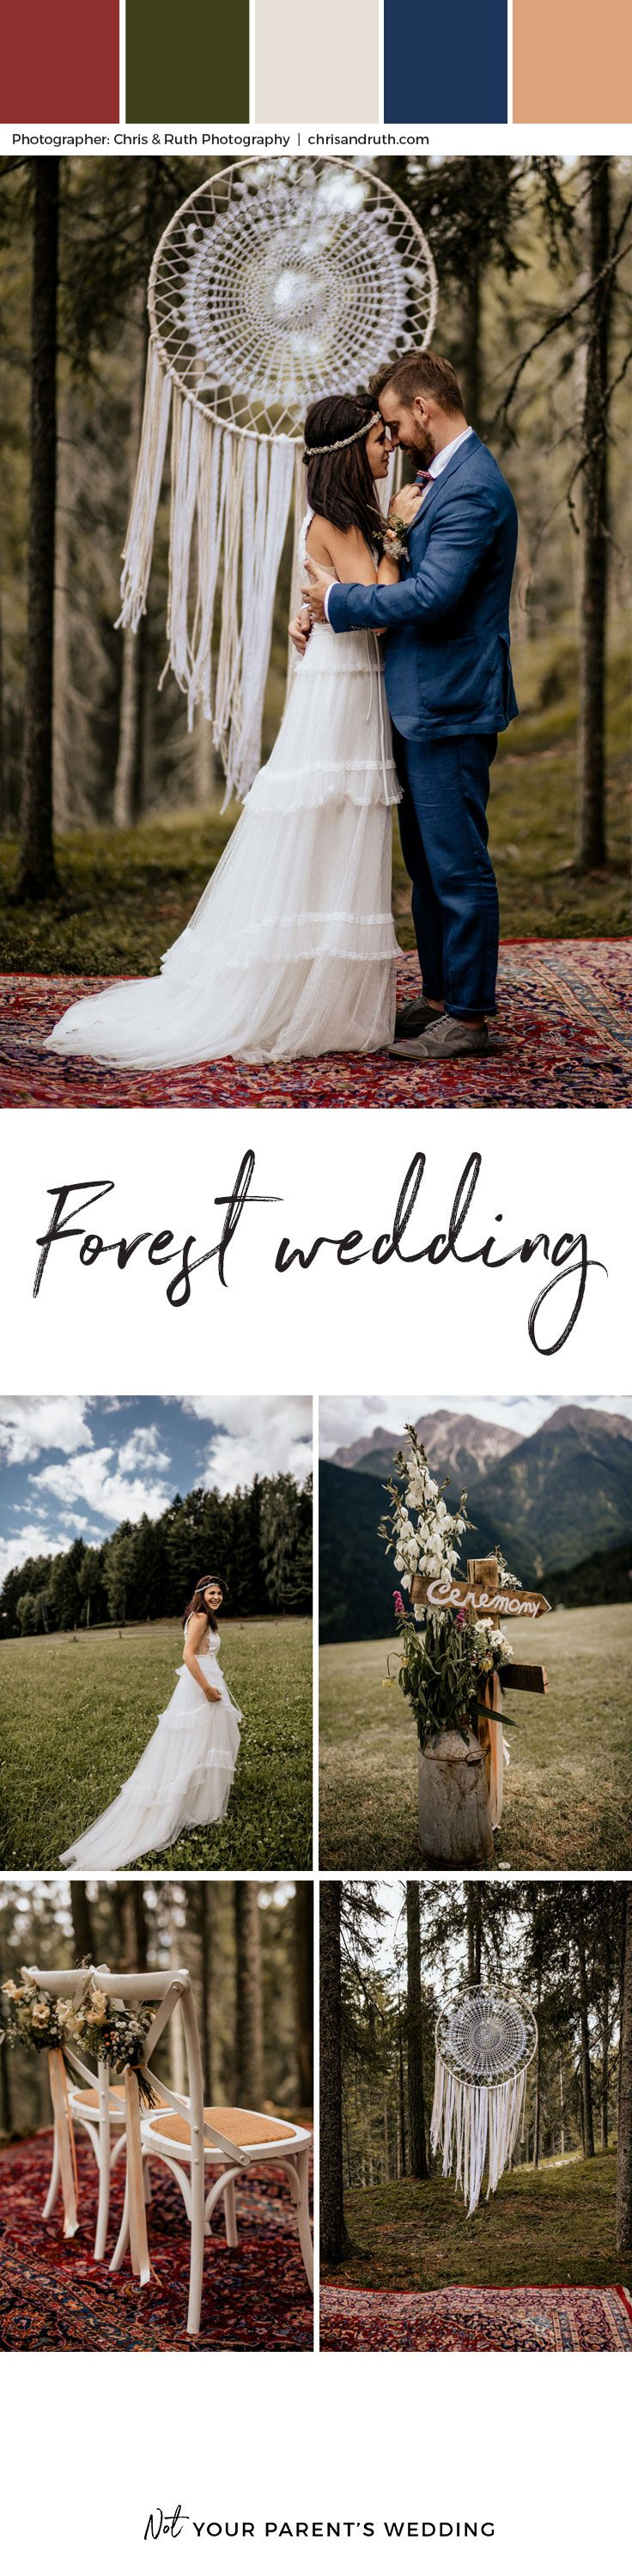 What can we say about this beautiful forest wedding captured beautifully by photographers Chris & Ruth Photography?  It has such a free spirited vibe, from the dreamcatcher alter to the vintage VW bus the bride pulls up in. Loving this vintage hippie wedding so hard. The groom chose a fun blue suit and the bride, a whimsical lacy flowy dress that pair beautiful together. forest wedding, boho wedding, hippie, flowy dress, wedding themes, wedding inspiration, wedding ideas